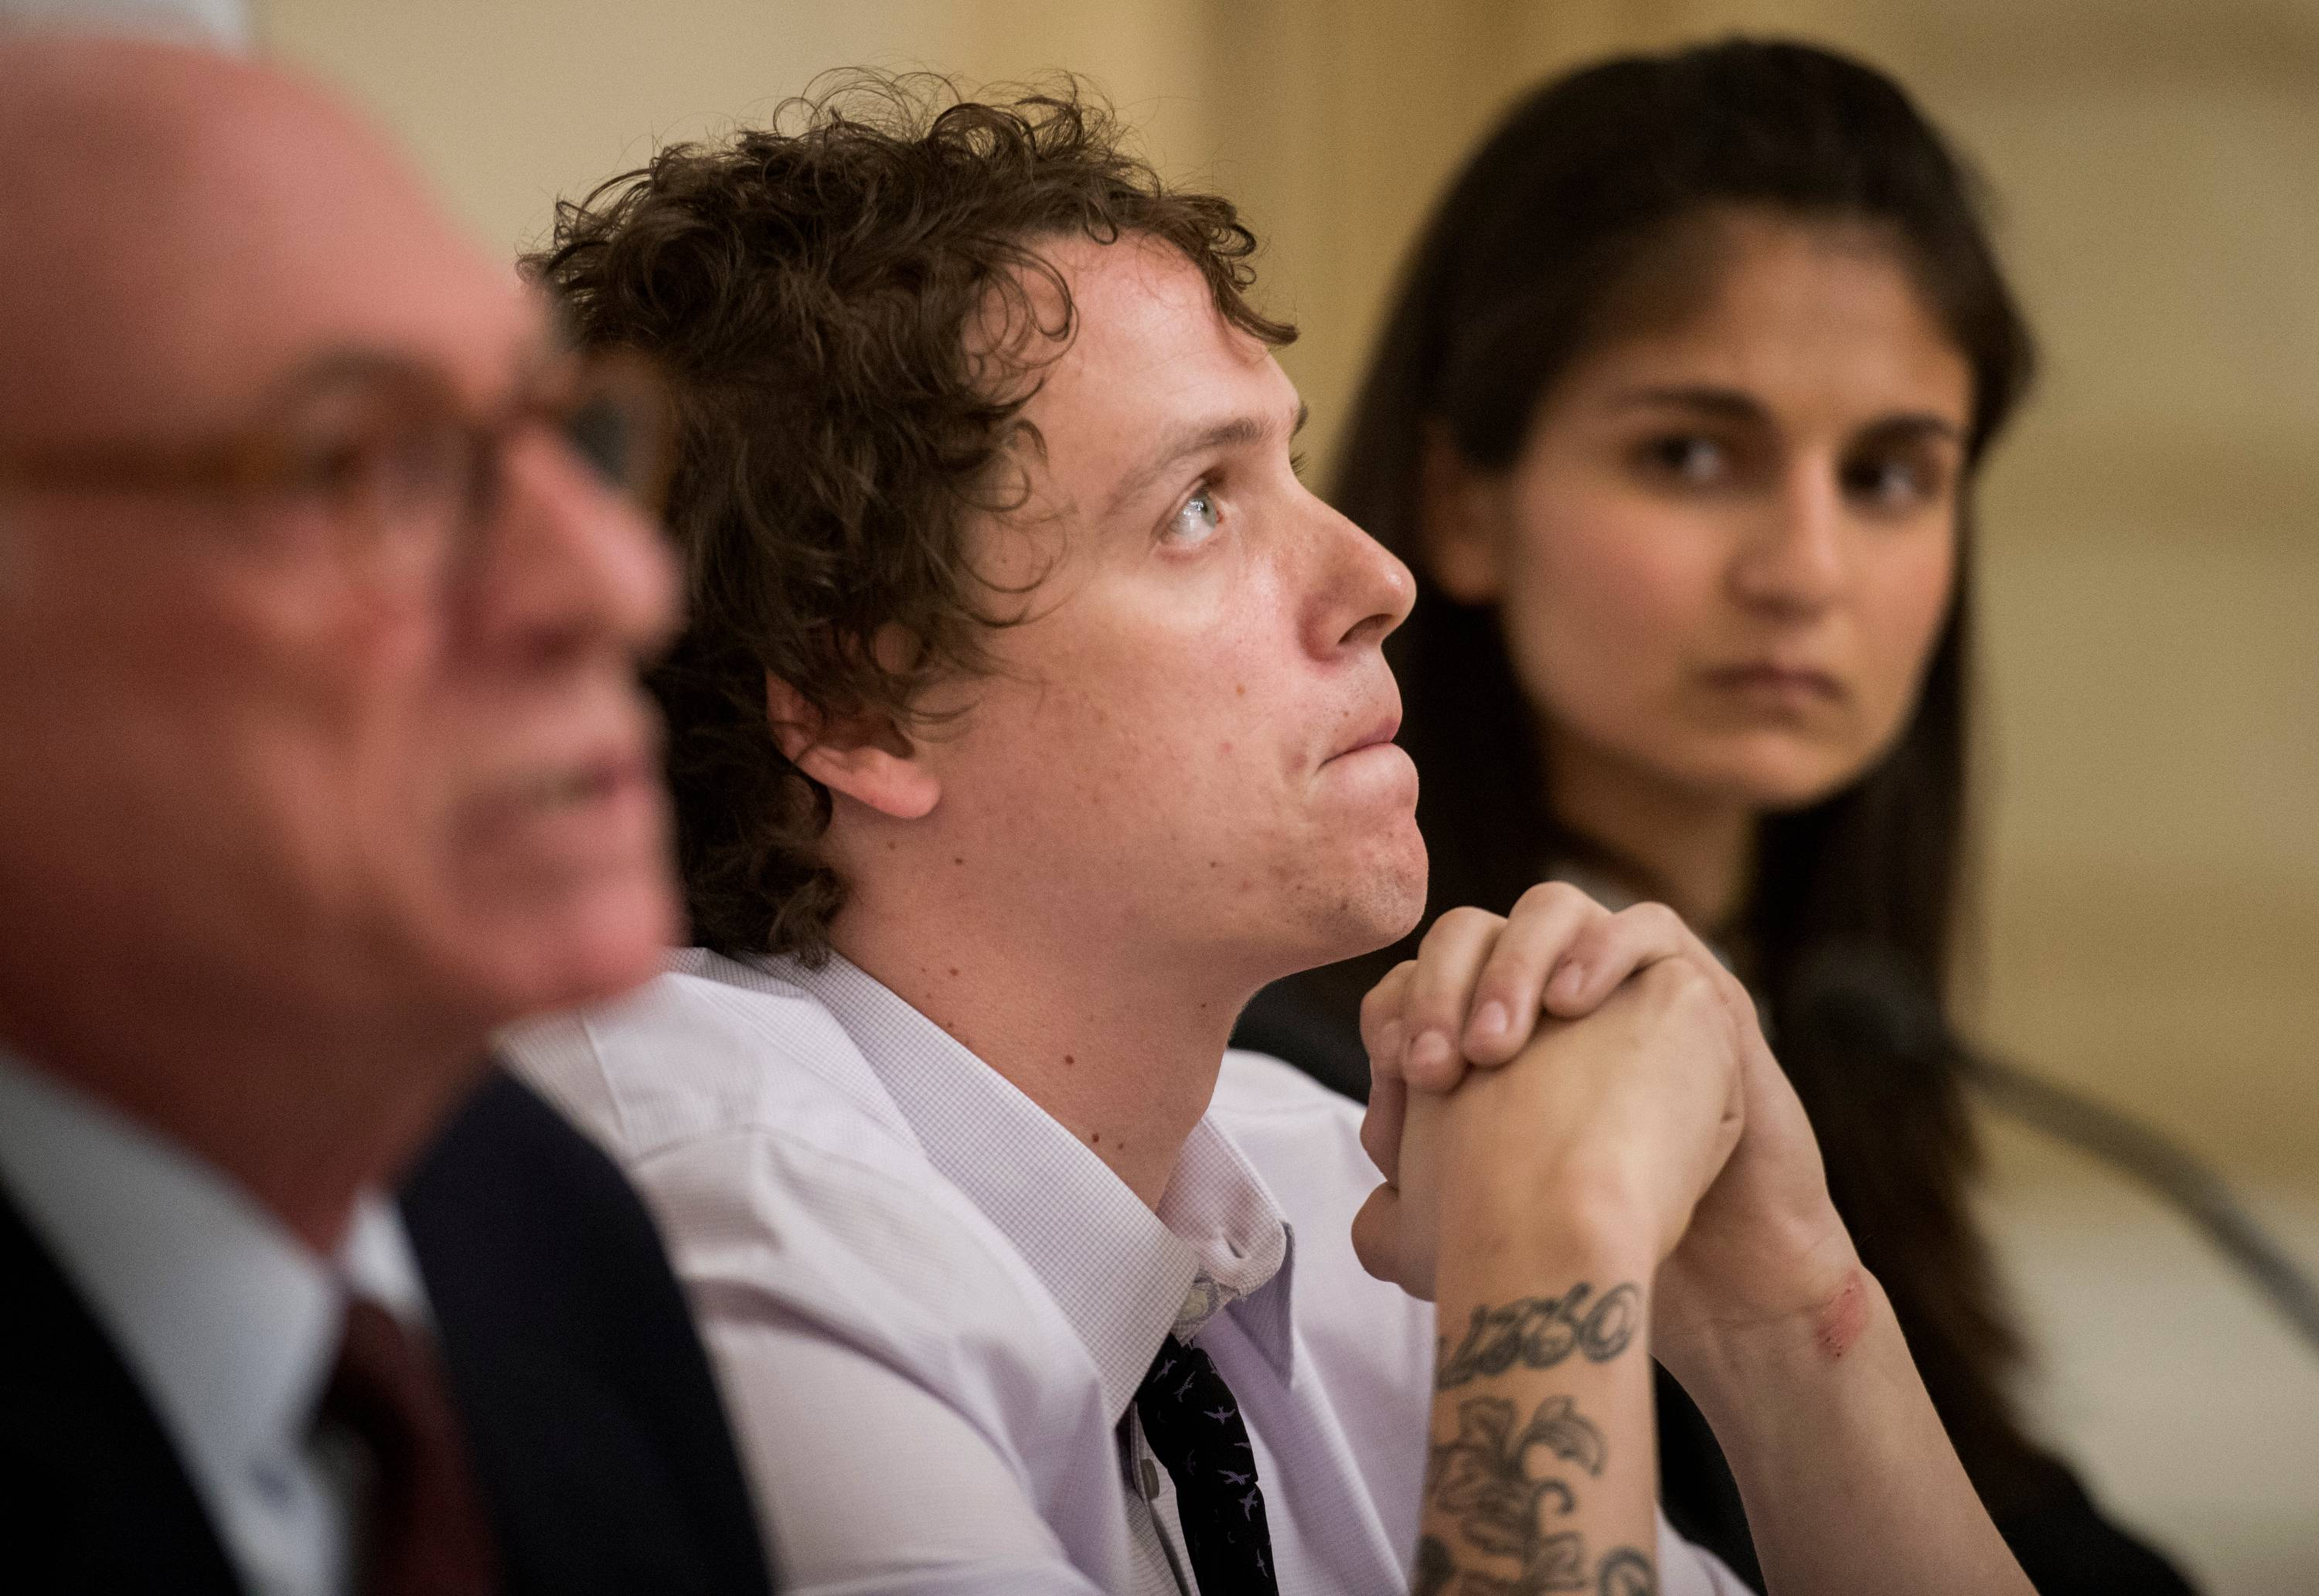 Jon Daniel, 29, of Peoria makes a statement as the American Civil Liberties Union's Harvey Grossman, left, and Roshni Shikari listen Thursday. The ACLU has filed a lawsuit on Daniel's behalf against Peoria's mayor and police chief.